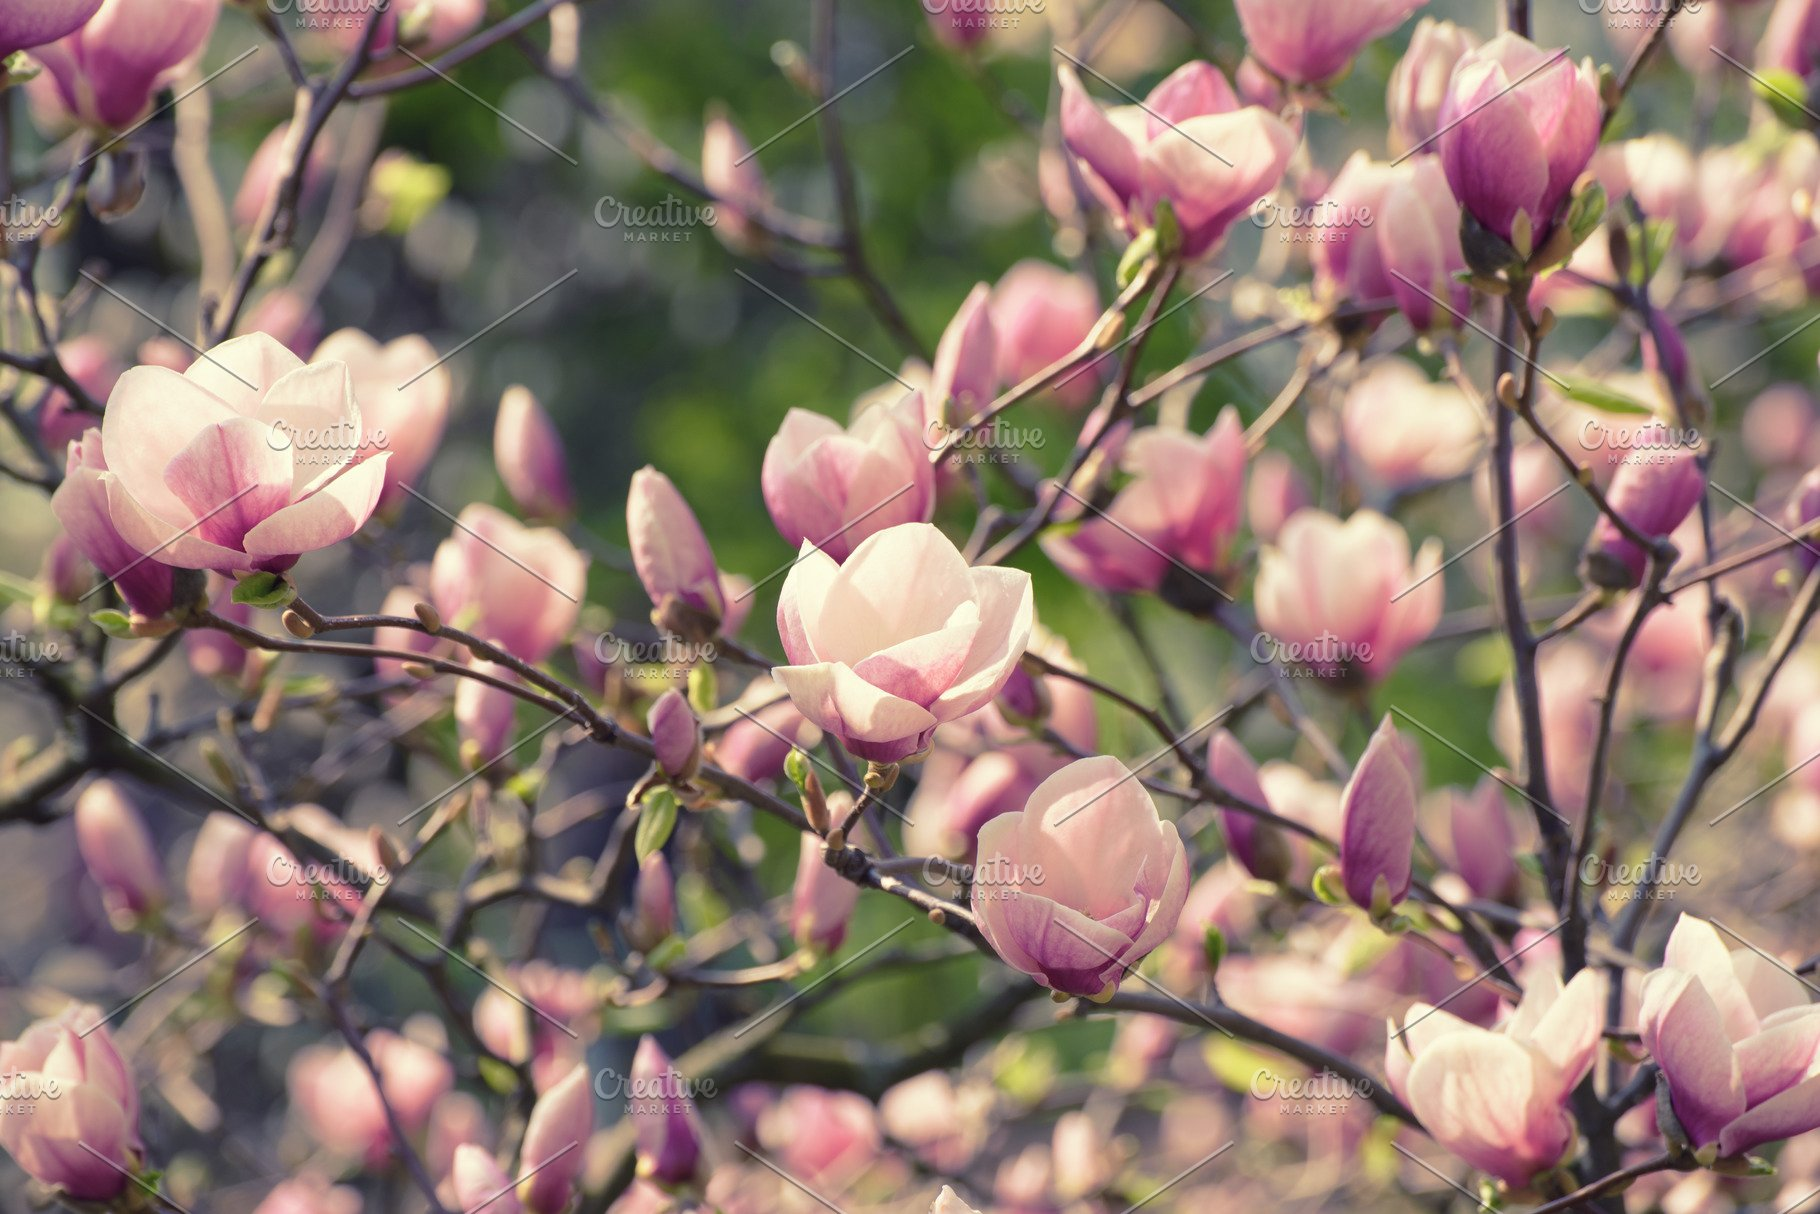 Magnolia Spring Flowers Nature Photos Creative Market